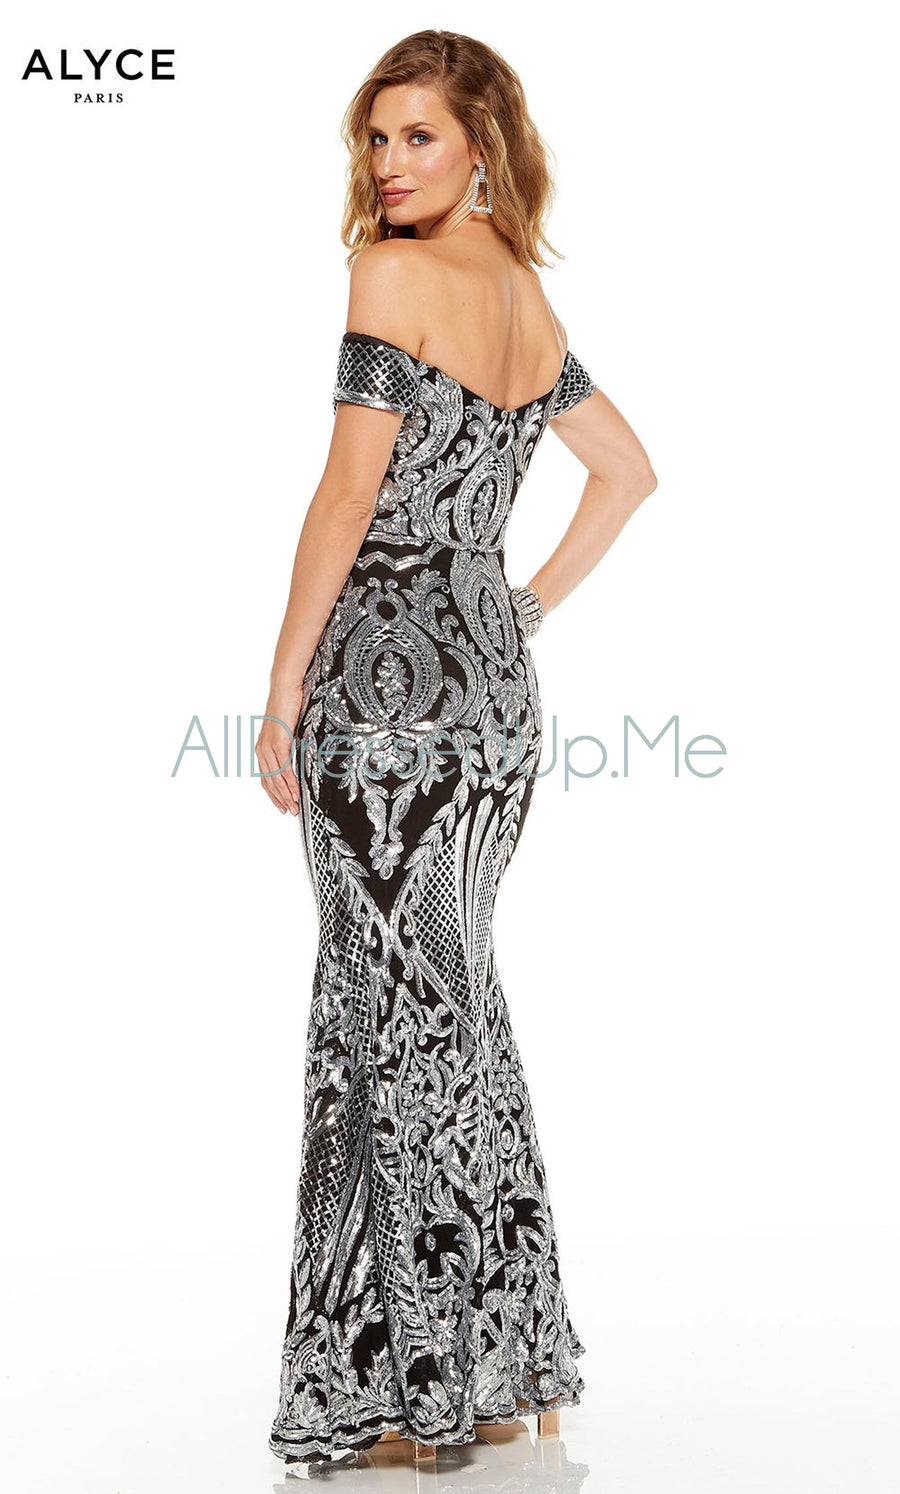 Alyce Paris - 60814 - All Dressed Up, Prom/Party Dress - - Dresses Two Piece Cut Out Sweetheart Halter Low Back High Neck Print Beaded Chiffon Jersey Fitted Sexy Satin Lace Jeweled Sparkle Shimmer Sleeveless Stunning Gorgeous Modest See Through Transparent Glitter Special Occasions Event Chattanooga Hixson Shops Boutiques Tennessee TN Georgia GA MSRP Lowest Prices Sale Discount